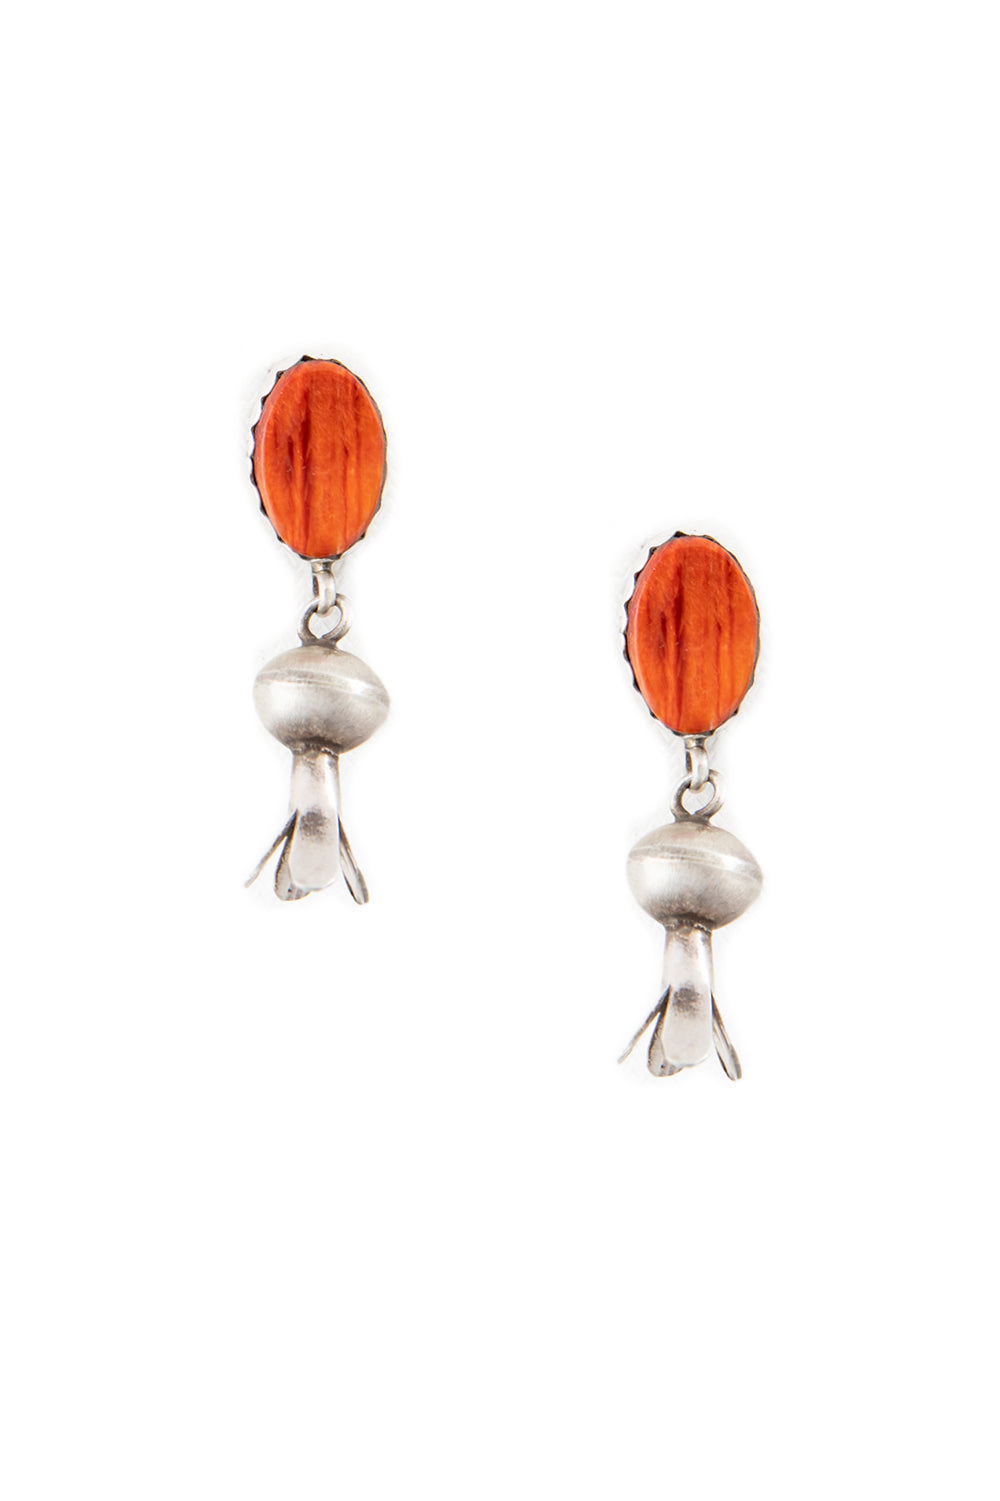 Earrings, Blossom, Spiny Coral, Hallmark, 423